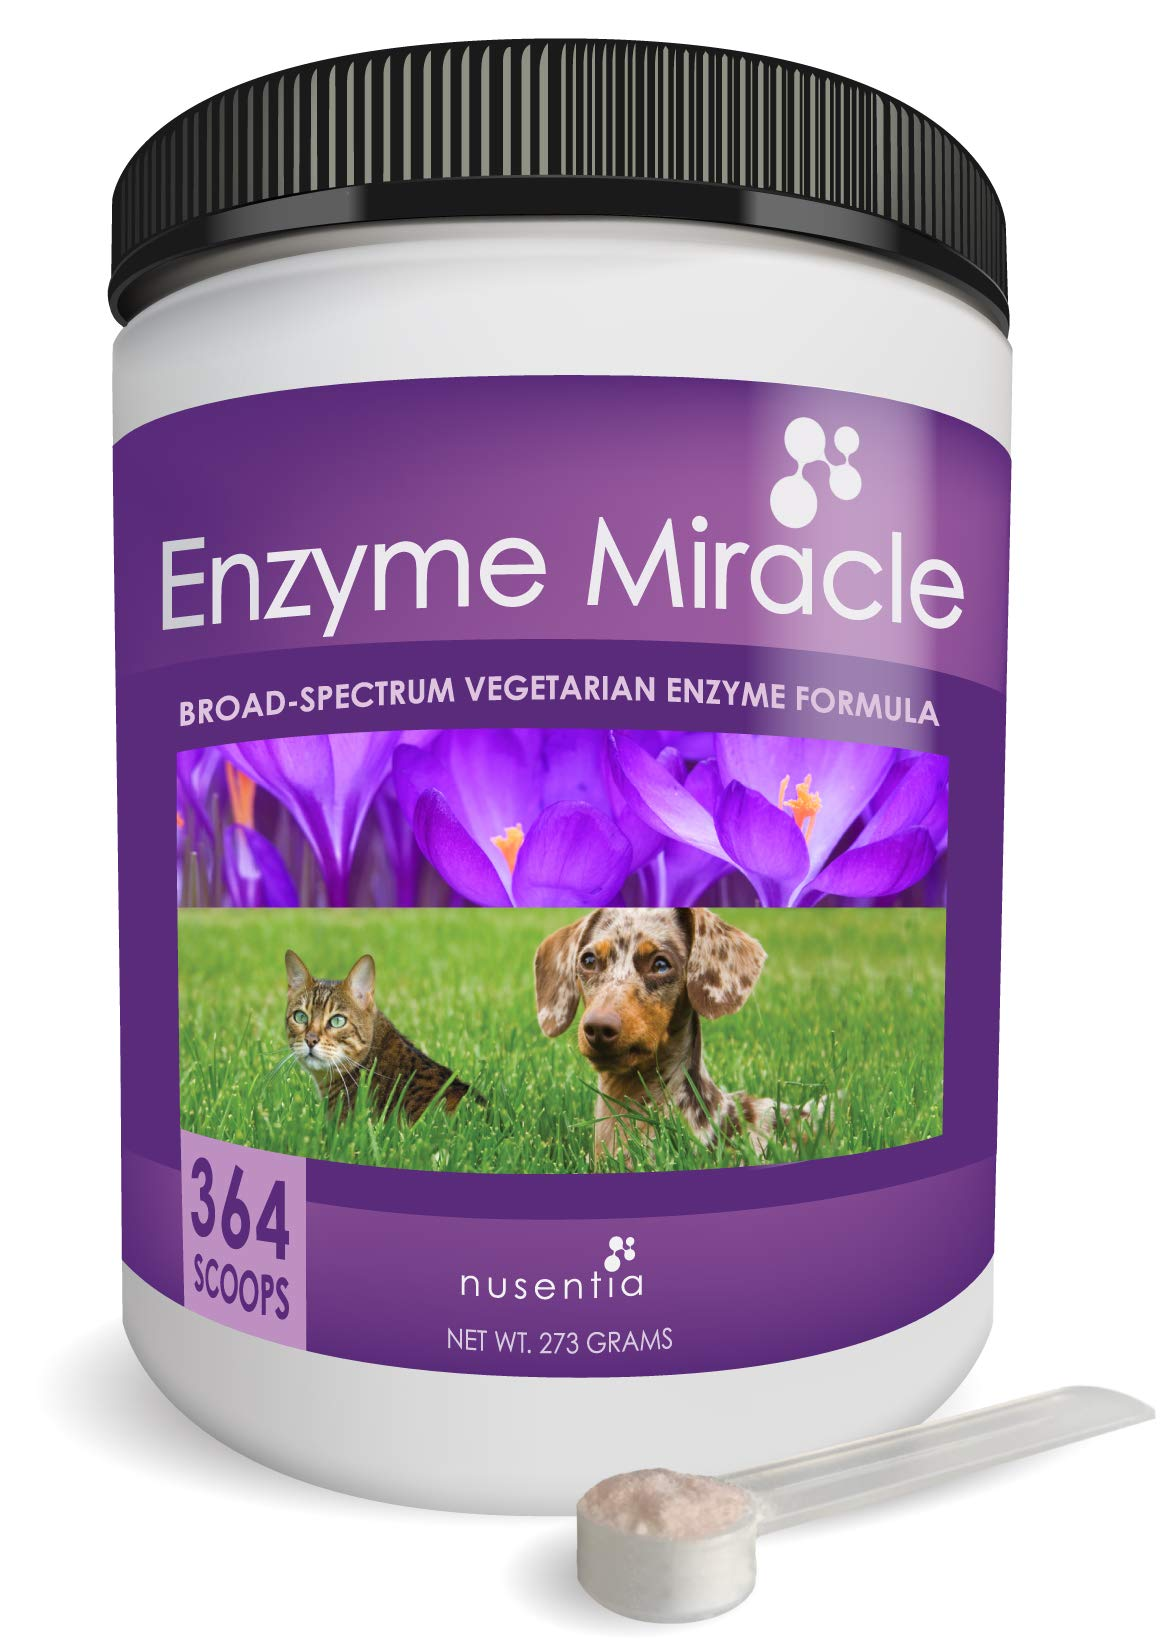 NUSENTIA Enzymes for Dogs & Cats - Enzyme Miracle - Systemic & Digestive Enzyme Formula - Powder - 364 Servings - Vegetarian by NUSENTIA